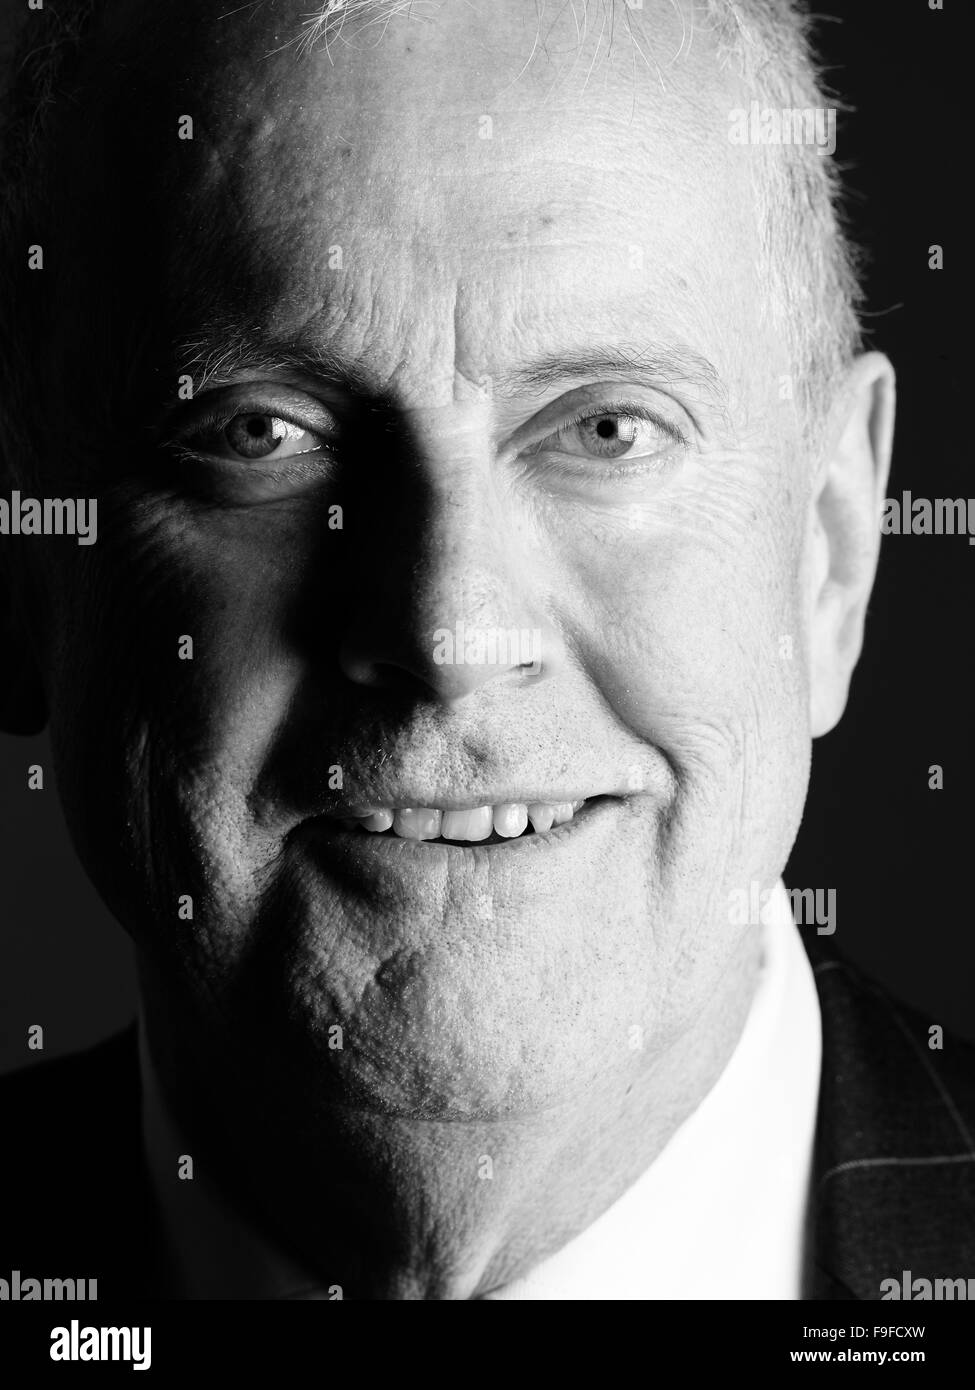 Giles Brandreth at the Oldie Literary Lunch 15-12-15 - Stock Image